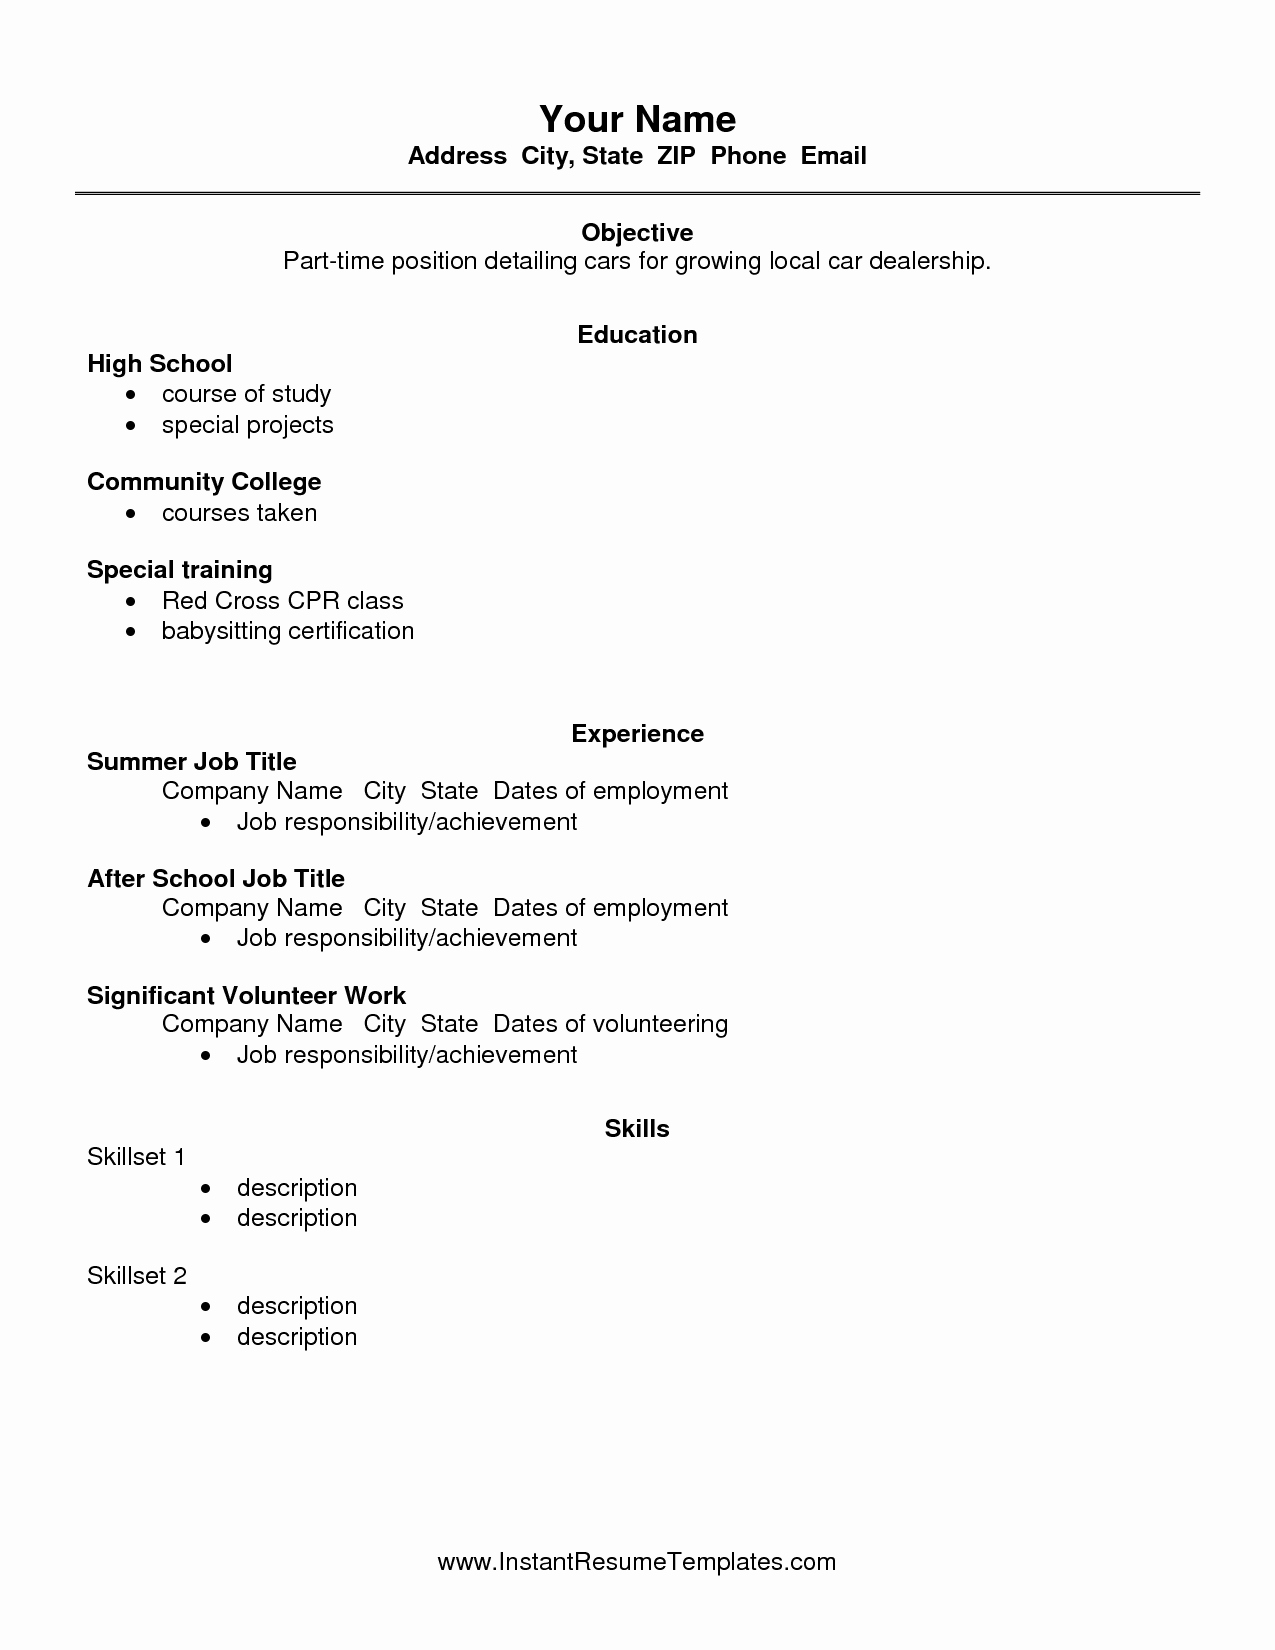 Basic Resume Templates for High School Students Graduate